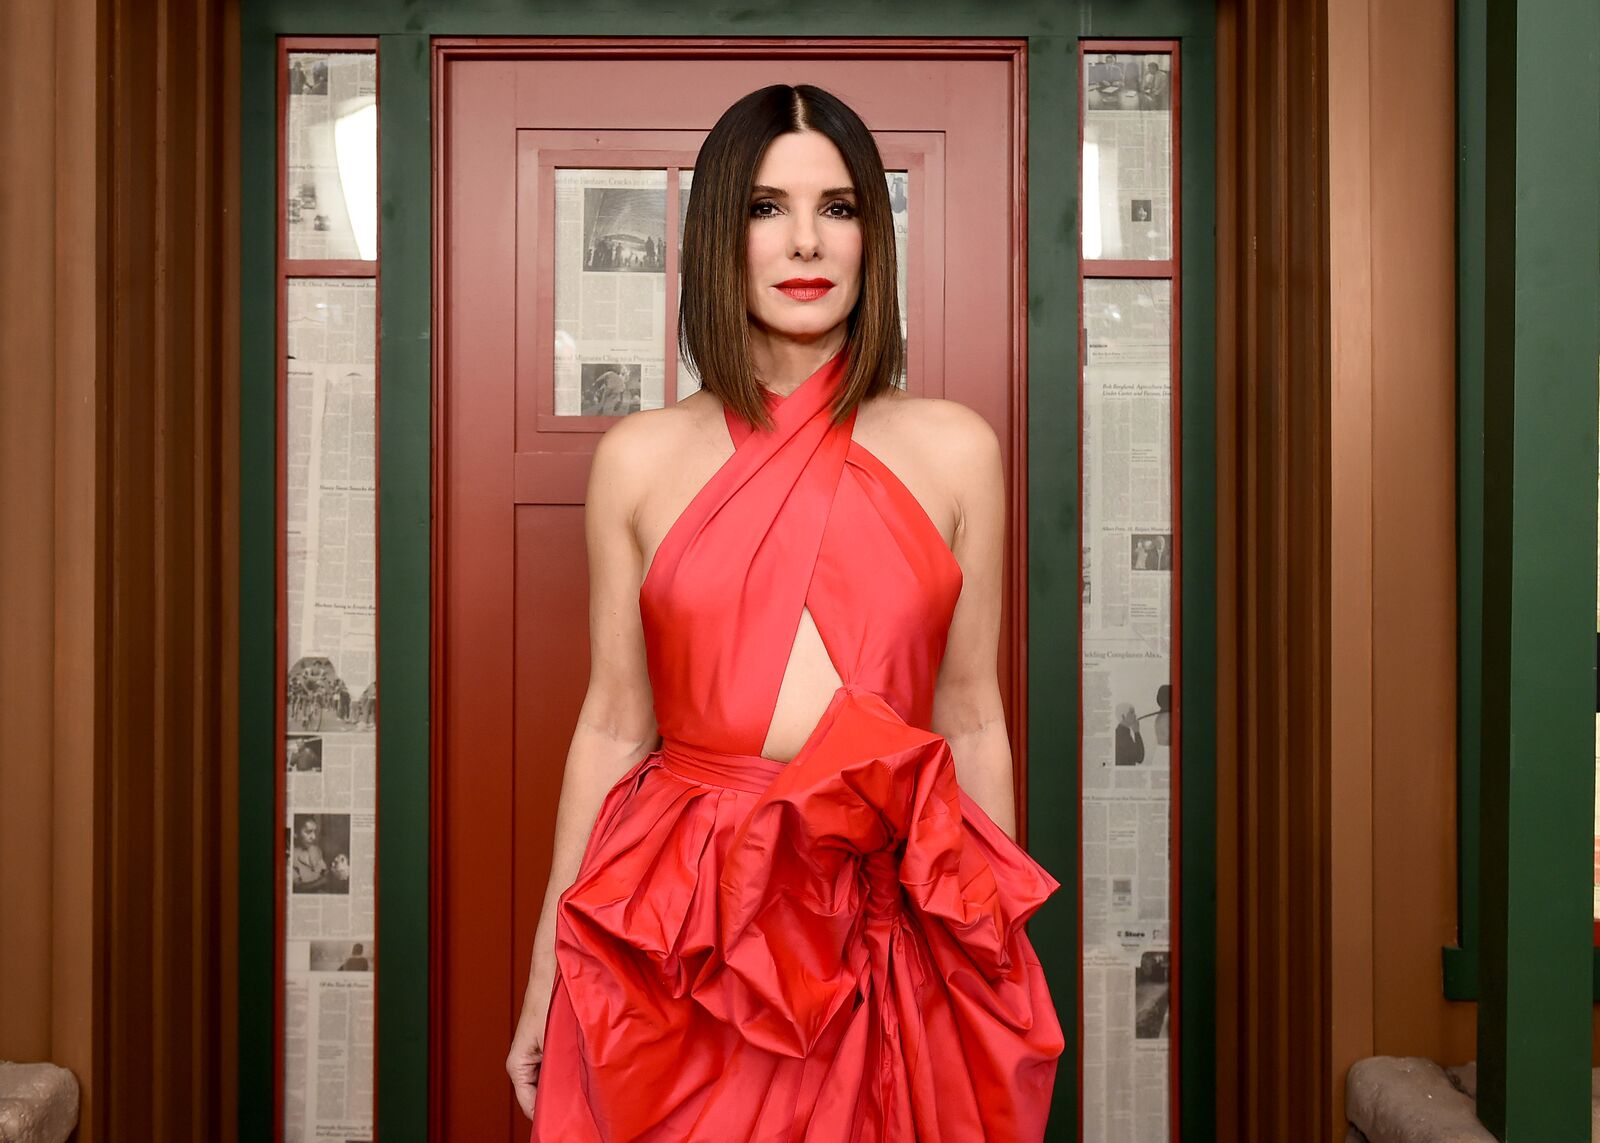 """Sandra Bullock attends the New York Special Screening Of The Netflix Film """"BIRD BOX"""" at Alice Tully Hall on December 17, 2018 in New York City 